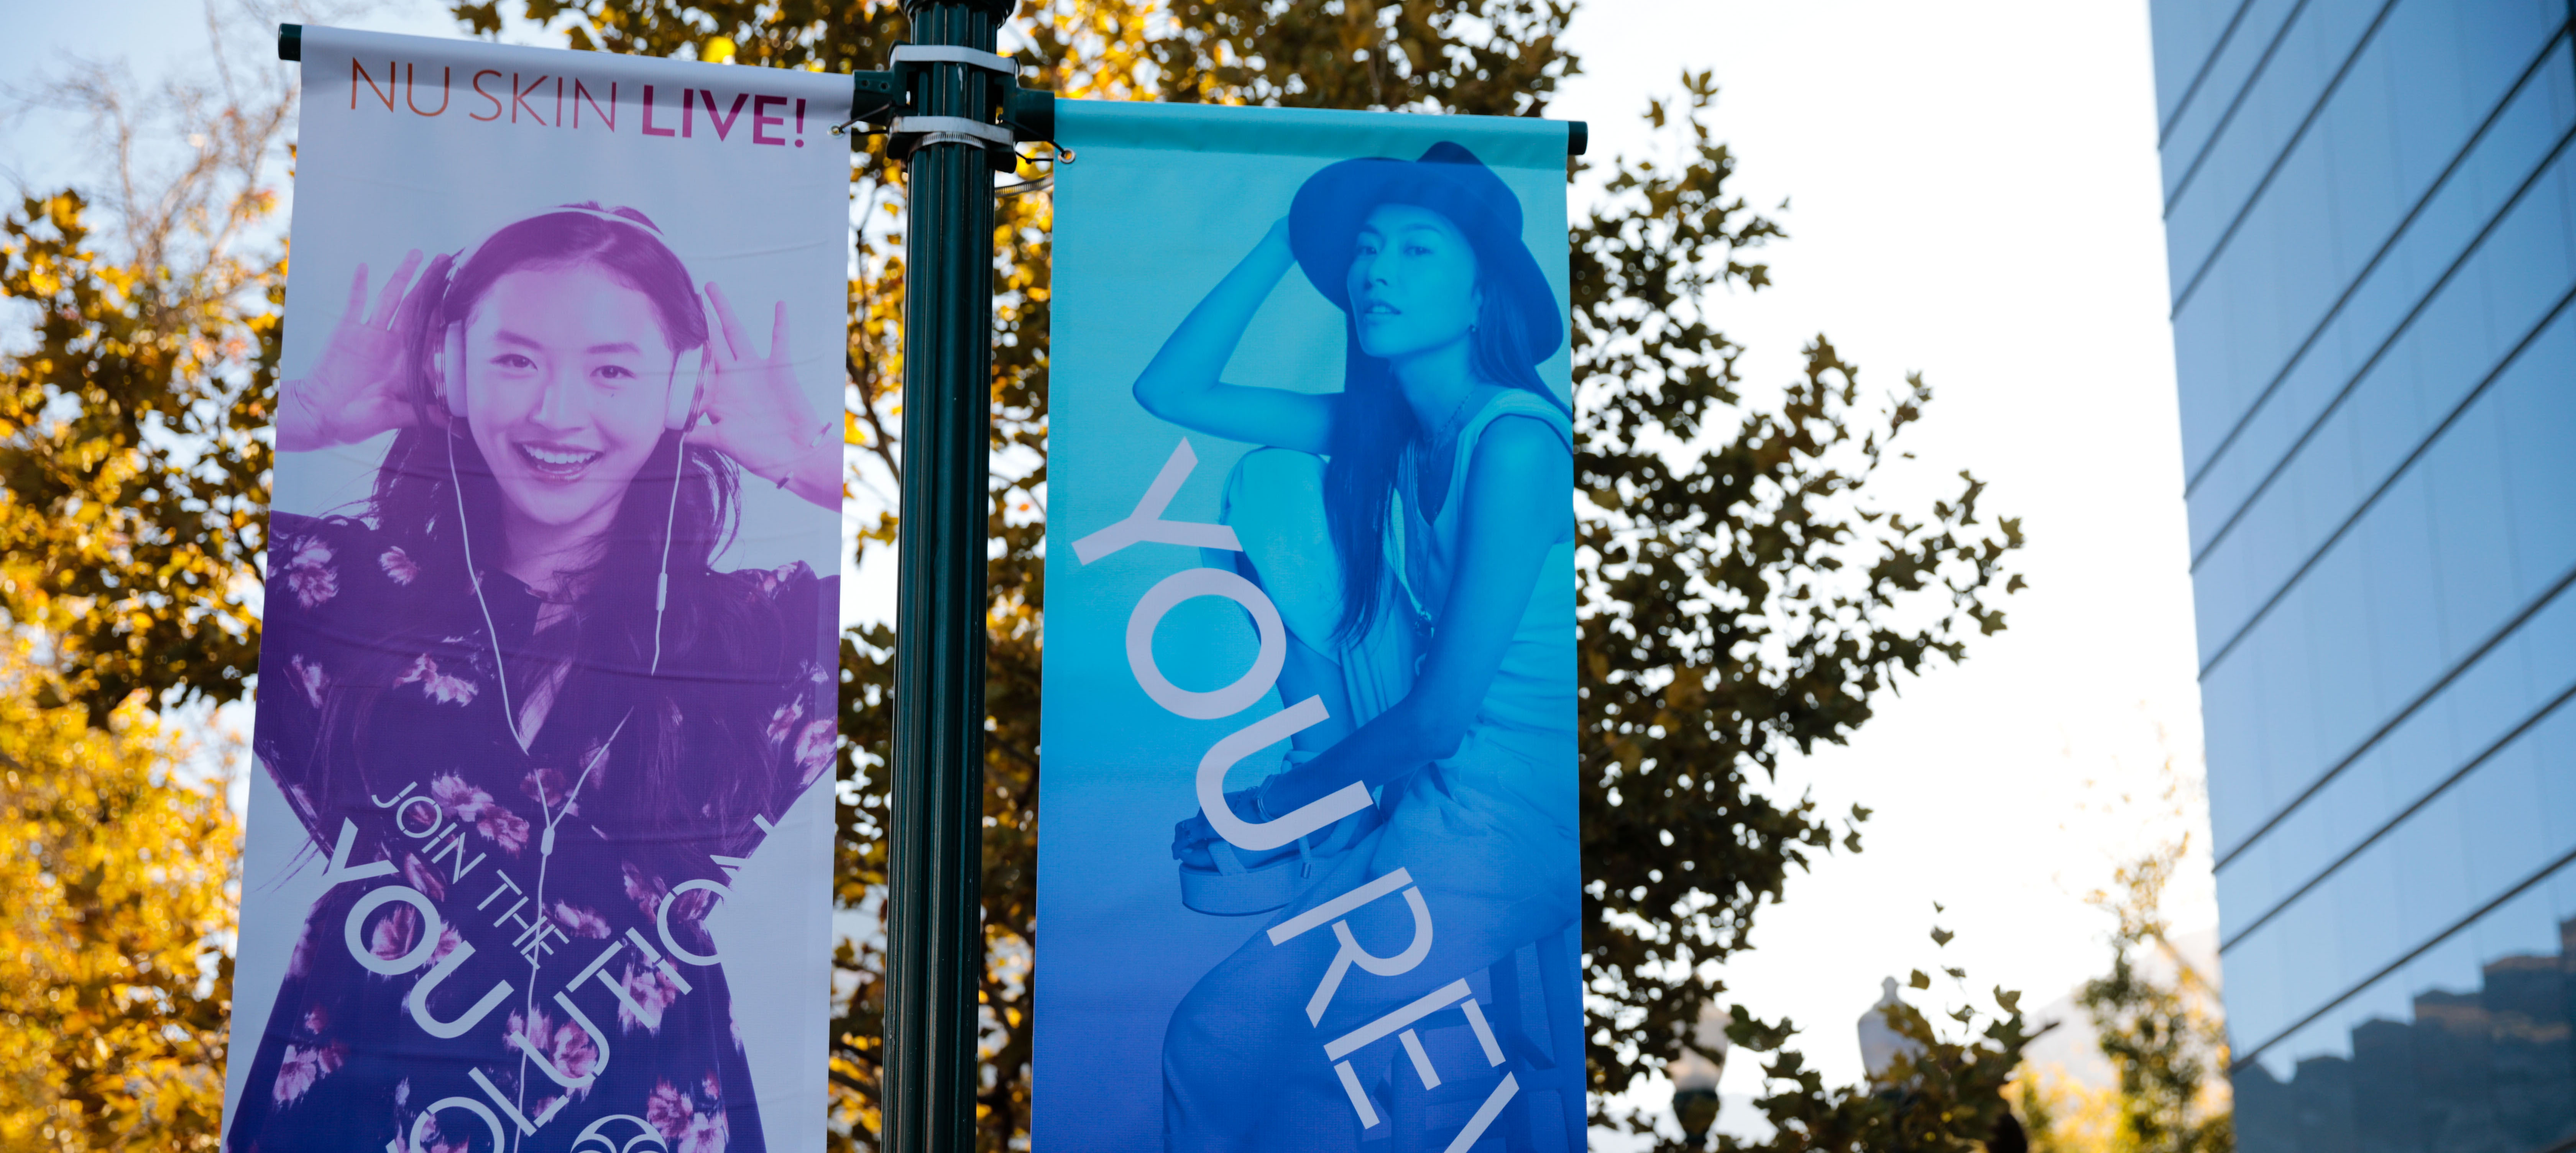 You Revolution banners hang on a light pole in front of the Nu Skin corporate office in Provo, Utah.